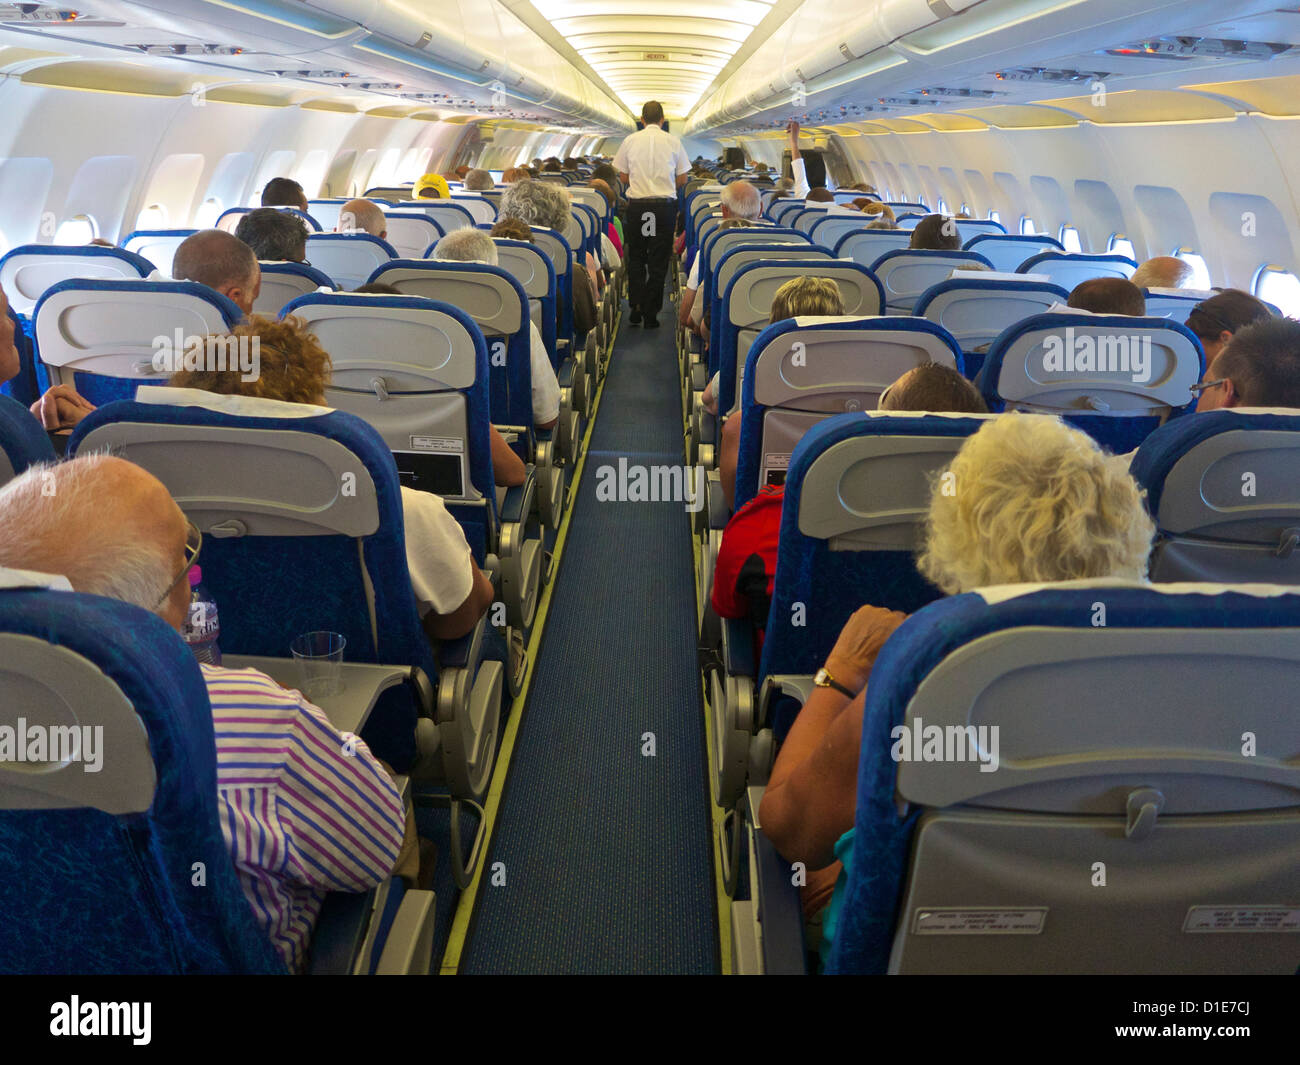 Airbus A320 plane inside cabin with passengers, France, Europe - Stock Image